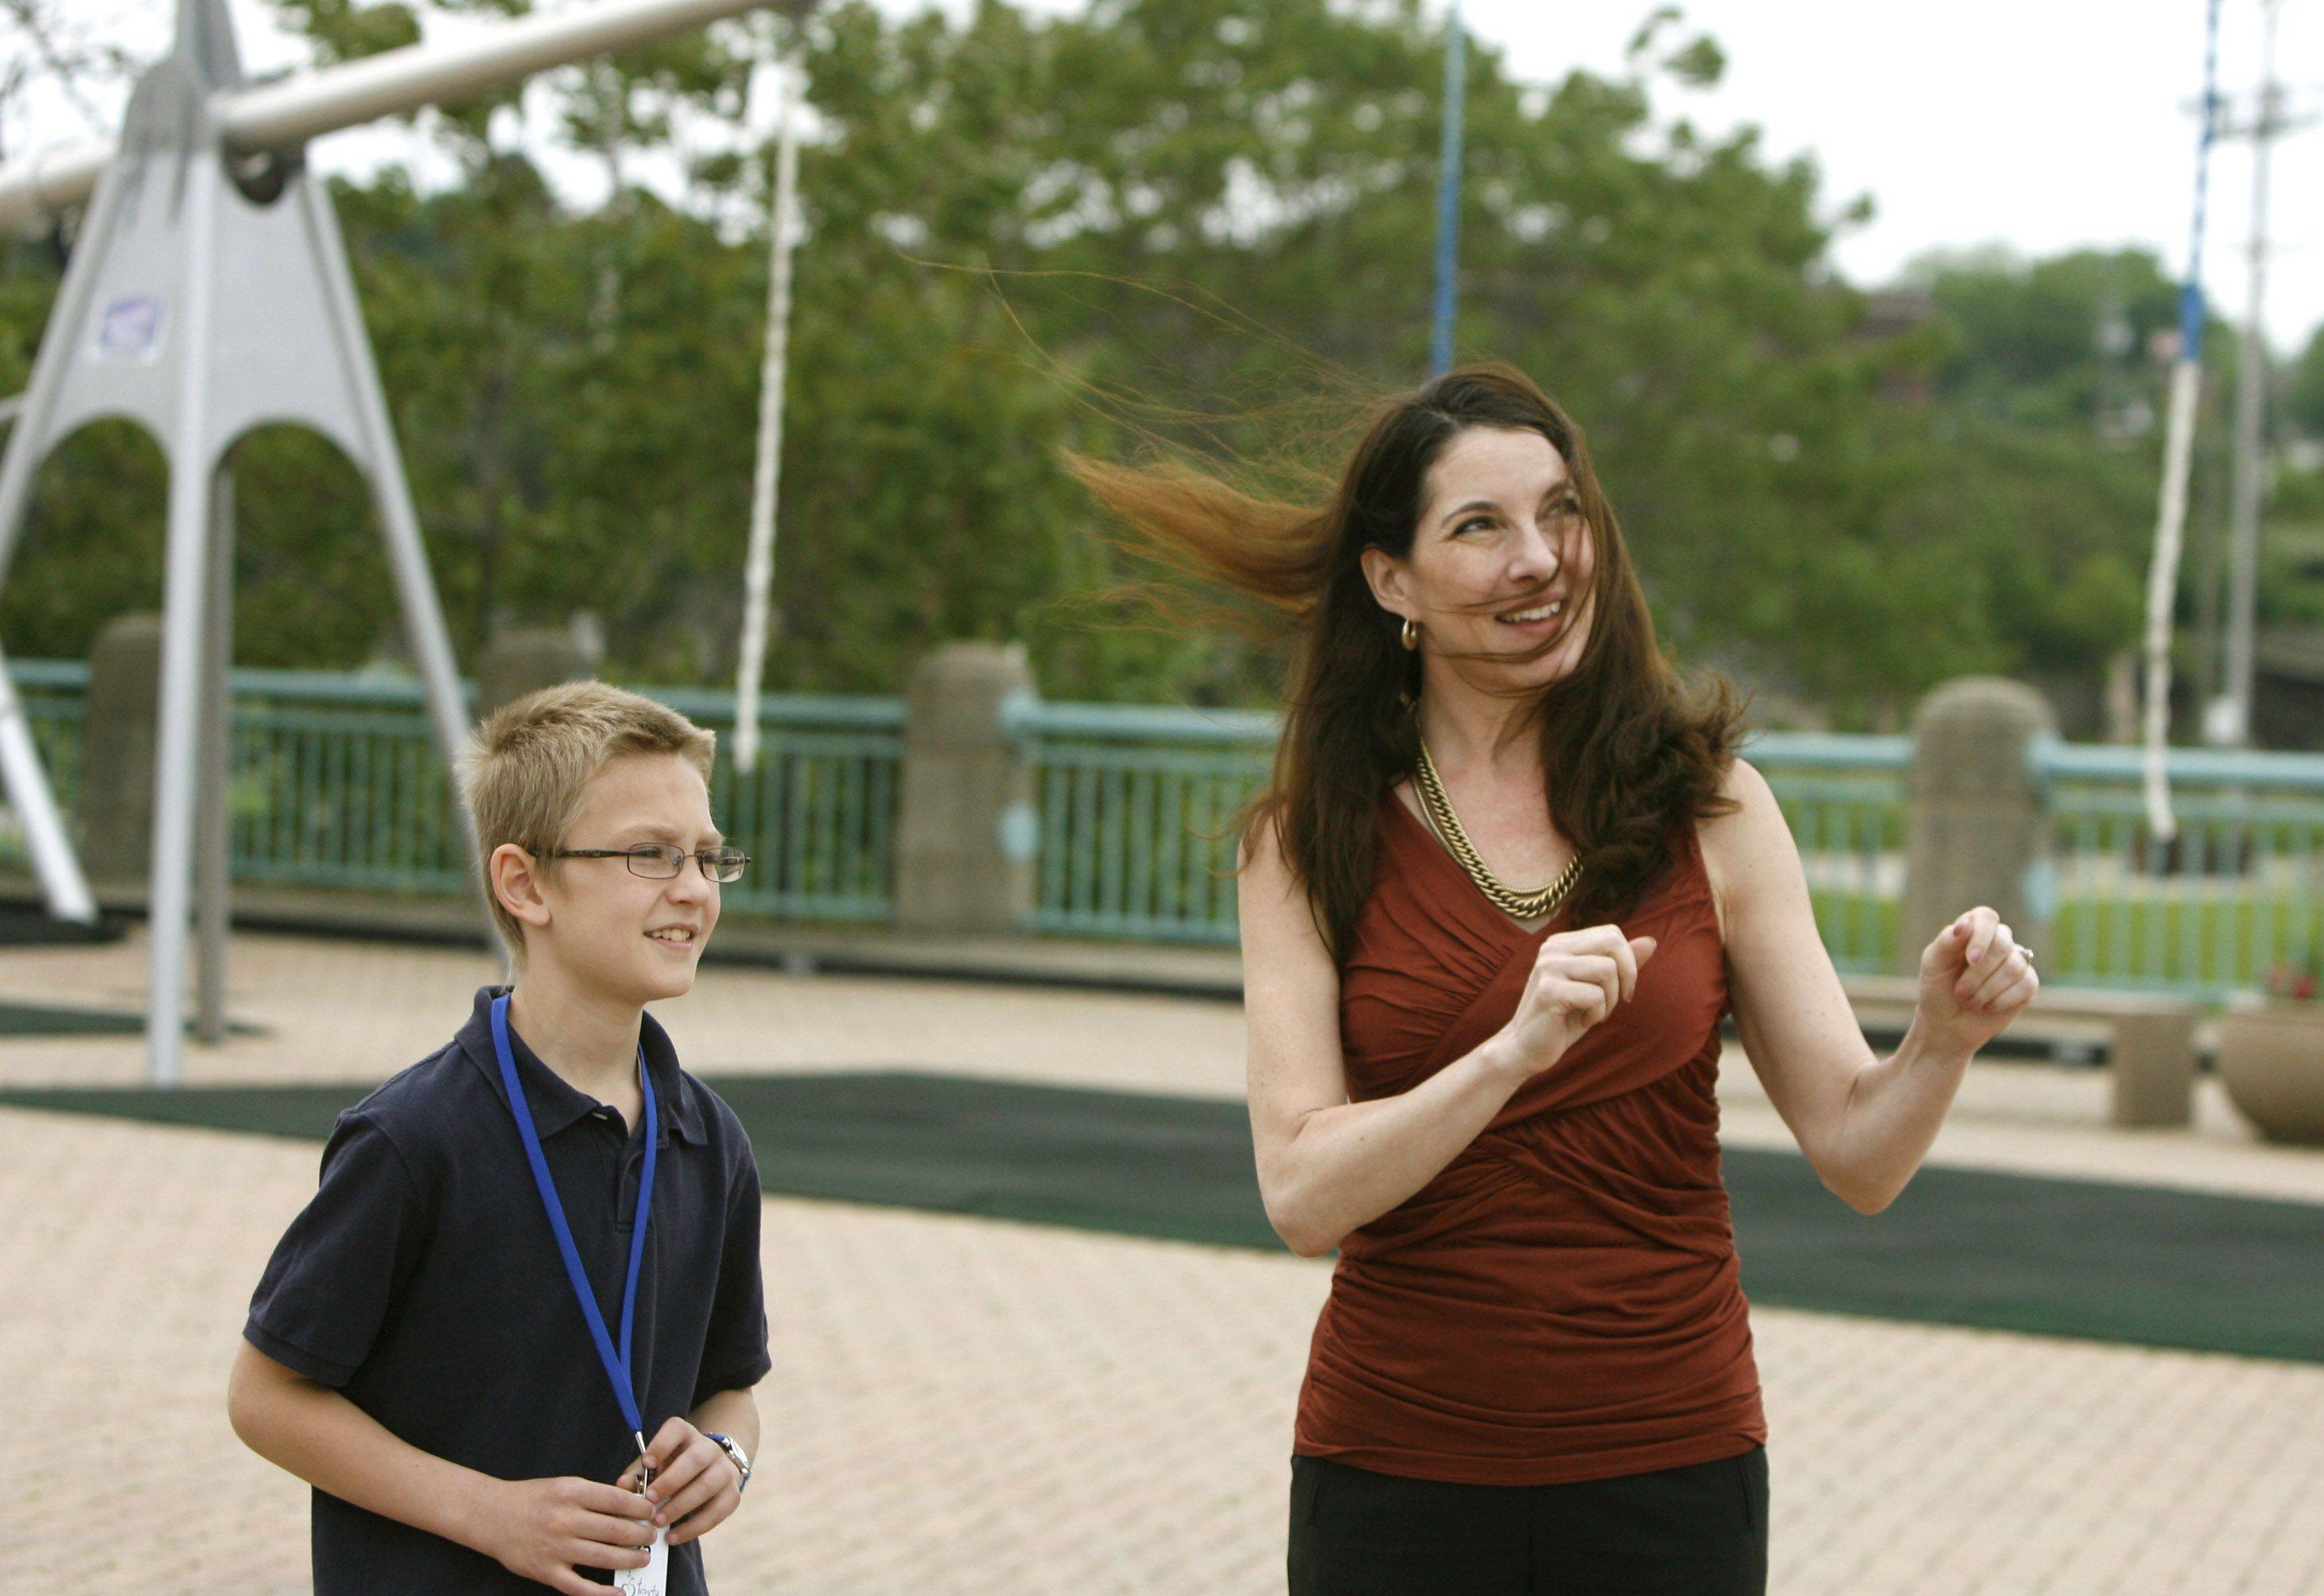 Carol Rehtmeyer, executive director of SciTech Hands-on Museum in Aurora, shows the museum's outdoor park to Marshall Schiele, 9, of Bartlett, who was there on a field trip.